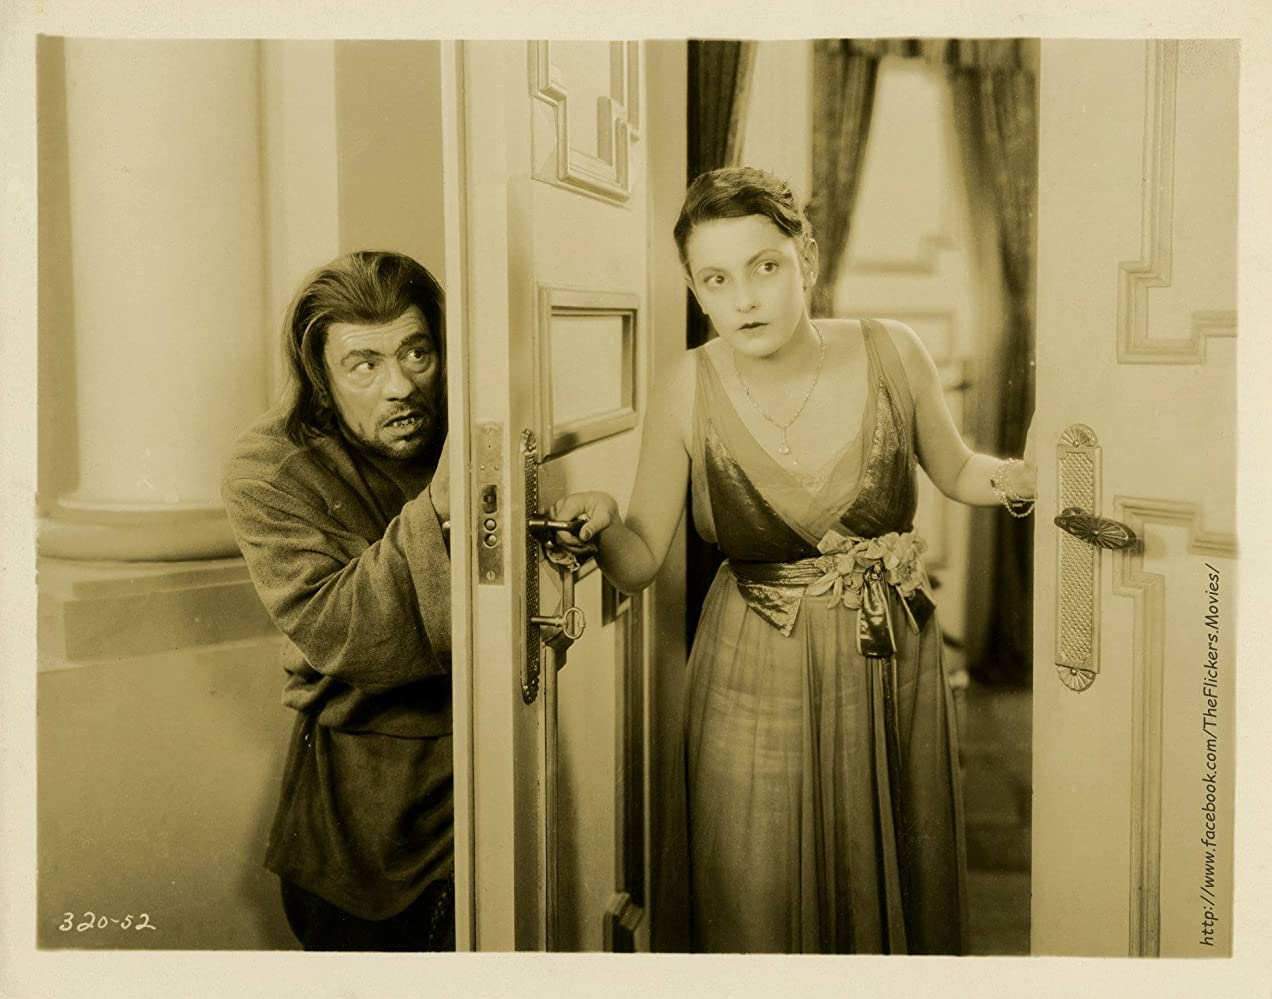 Barbara Bedford and Lon Chaney in Mockery (1927)